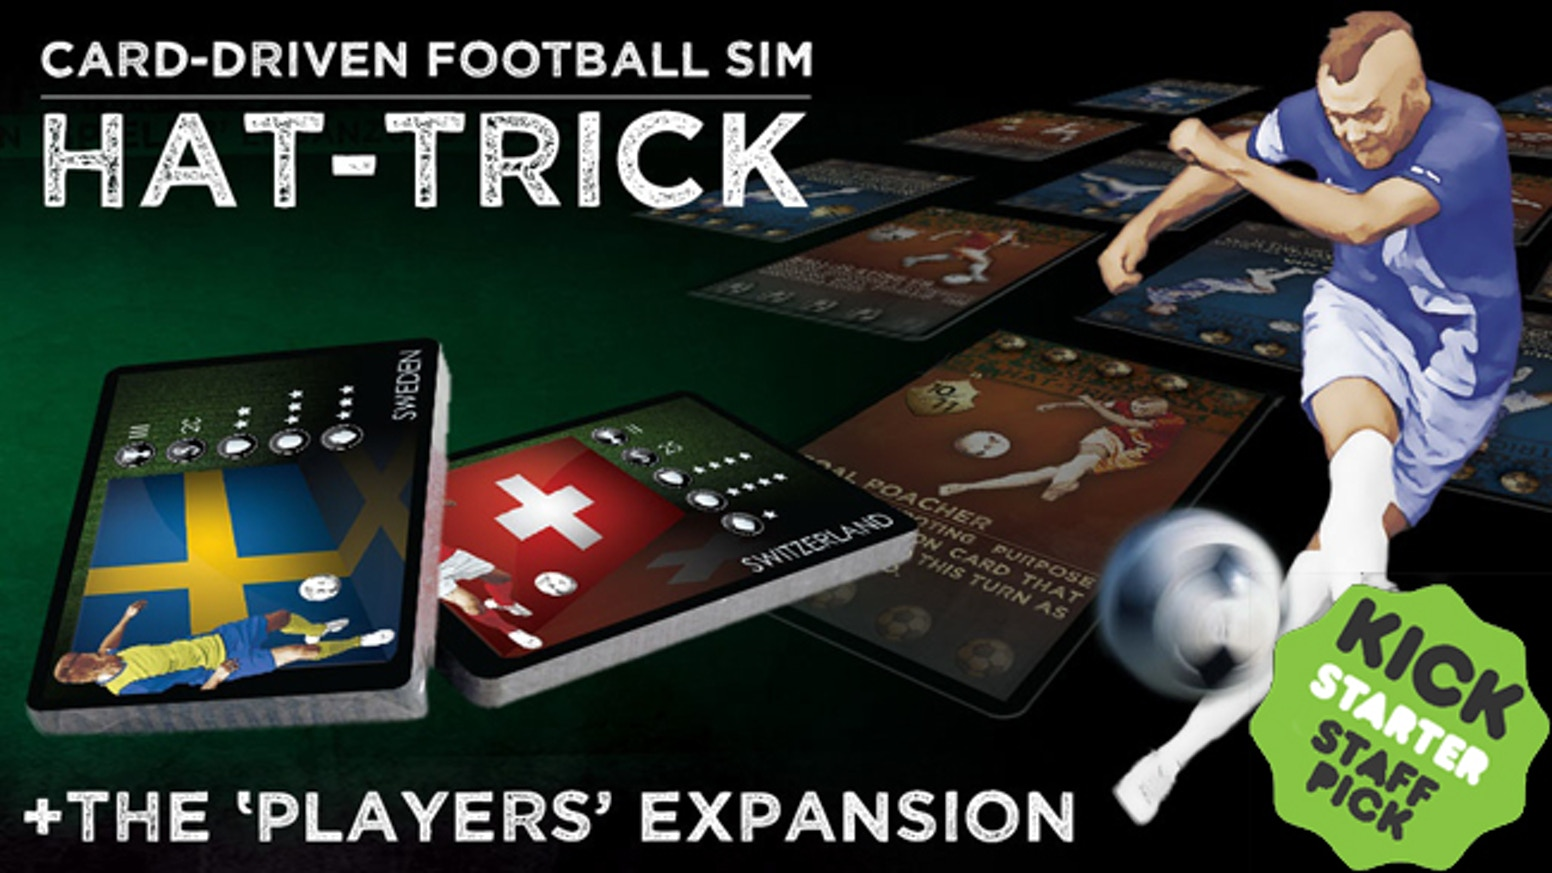 Strategy board game for football lovers. Use 44 player skills to recreate any team in the world or manage 1 of the 24 in-game teams.